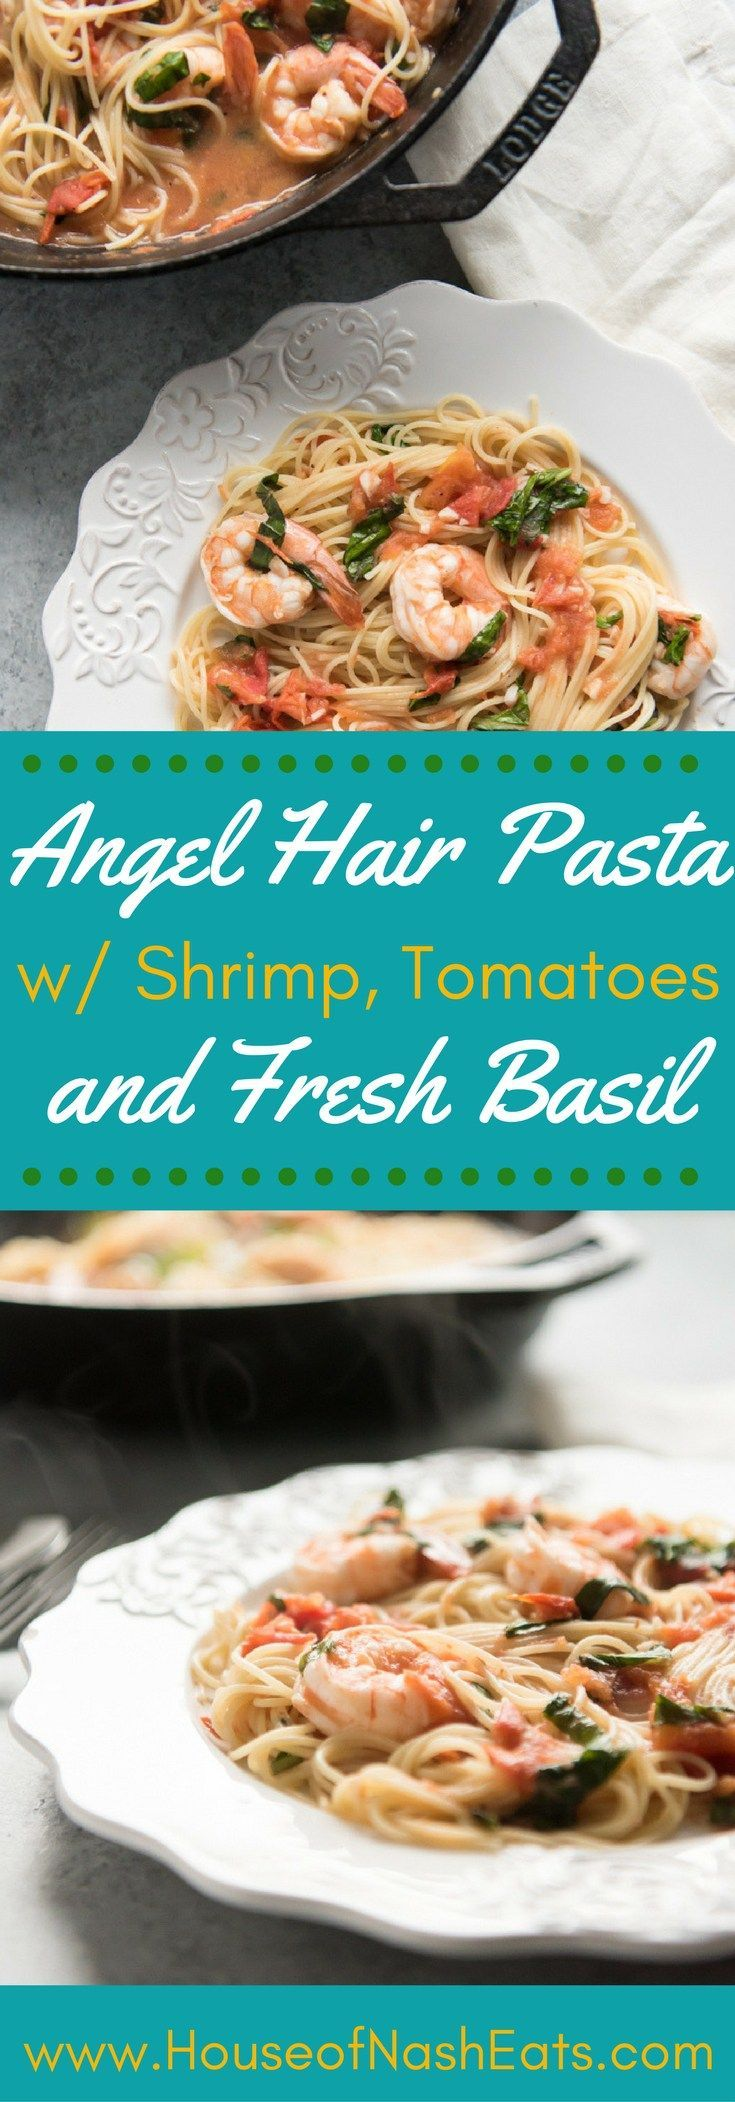 A classic combination of seafood and pasta, Angel Hair Pasta with Shrimp, Tomatoes and Fresh Basil makes for a simple, but elegant dinner with incredible flavors! It's an easy-fancy meal that is just as perfect to impress somebody special as it is to sati